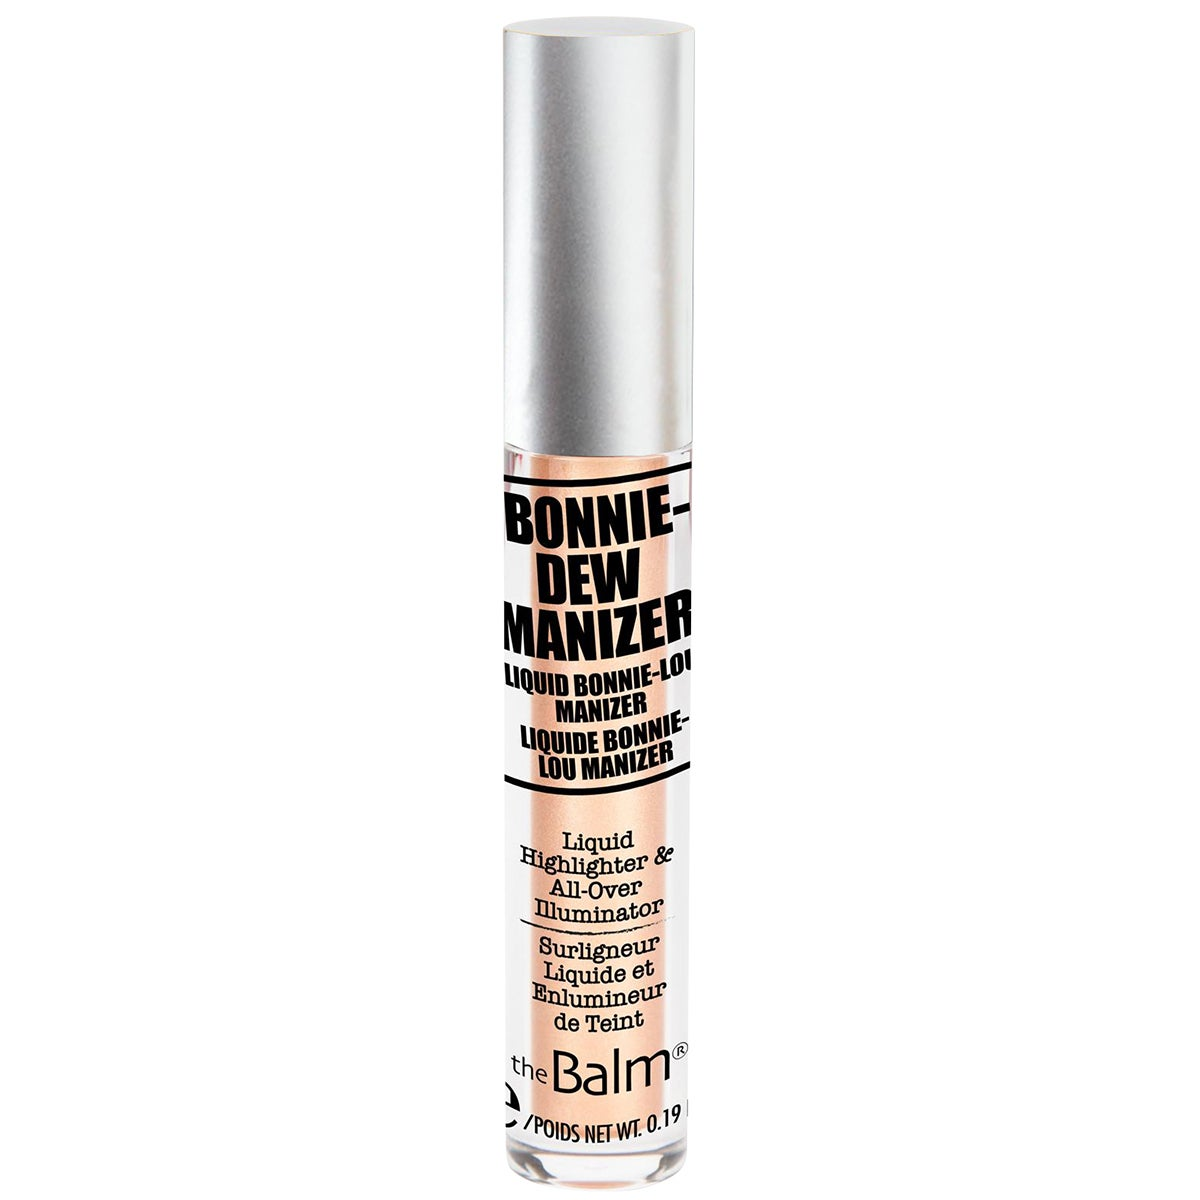 the Balm Bonnie-Dew Manizer Liquid Highlighter